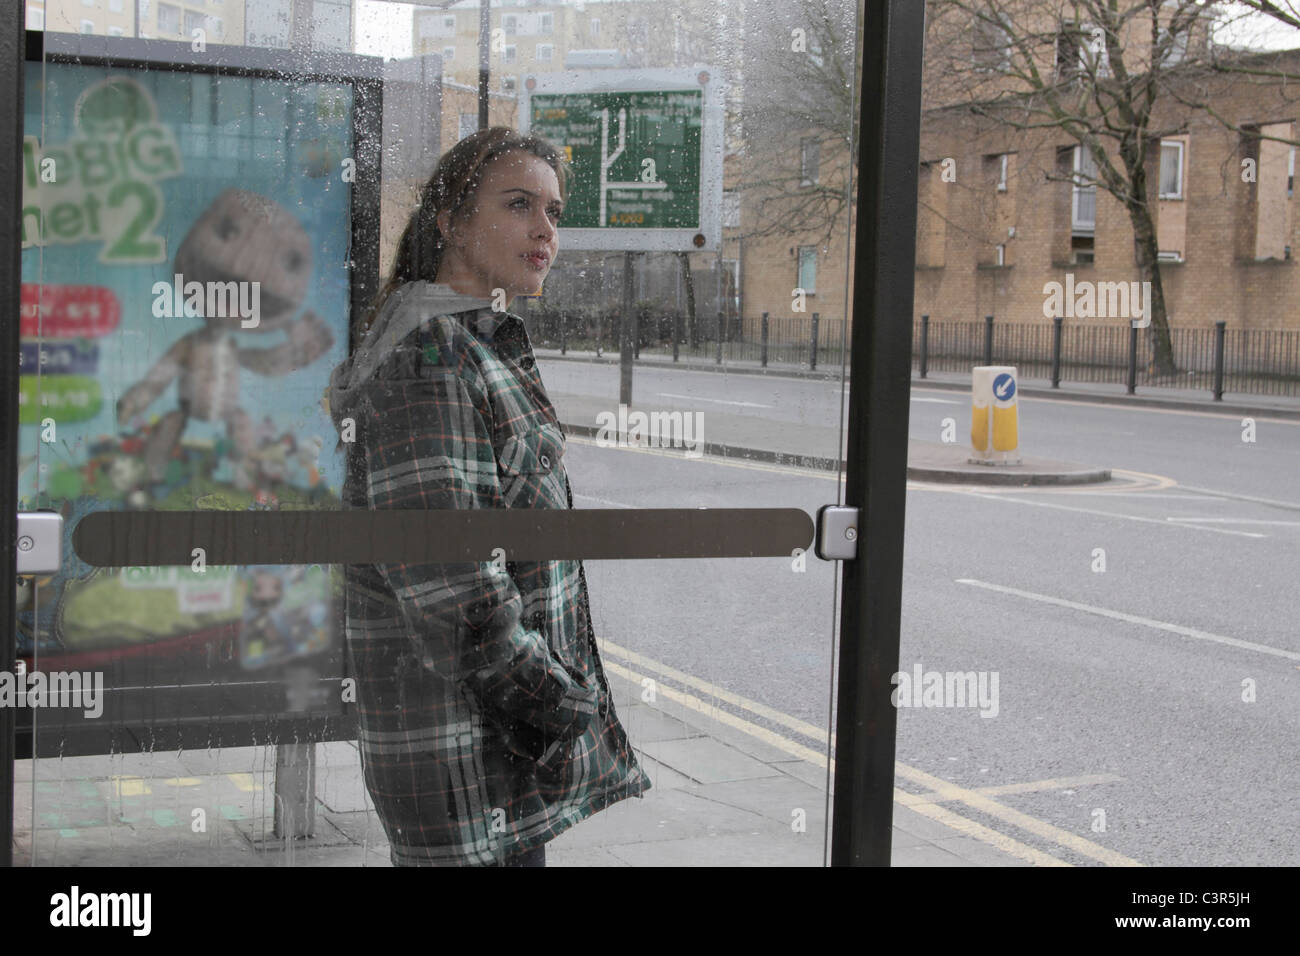 Young woman at bus shelter in rain - Stock Image